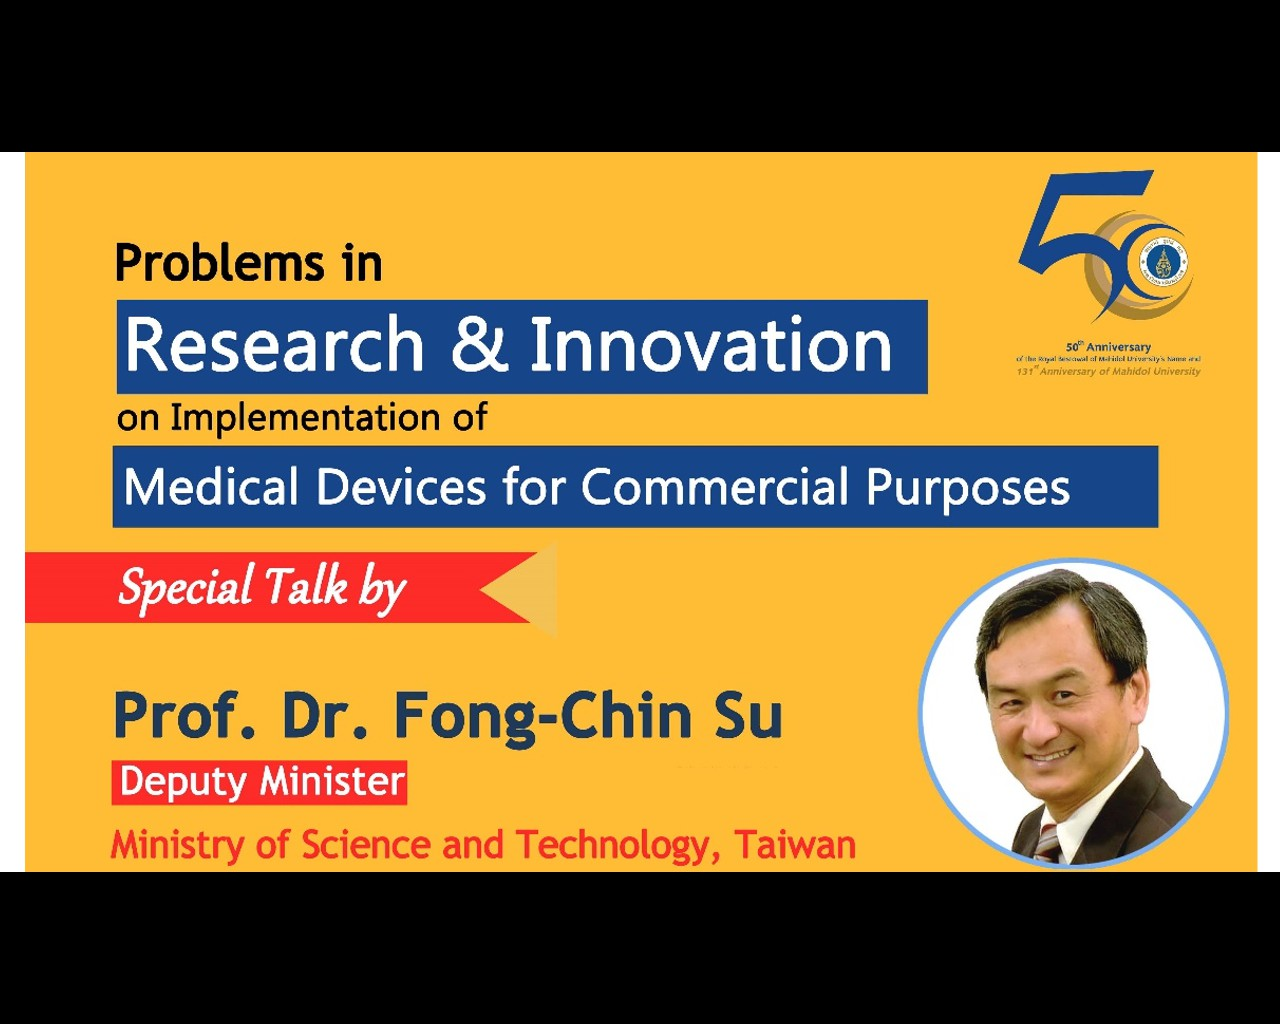 Special Talk by Deputy Minister of Taiwan